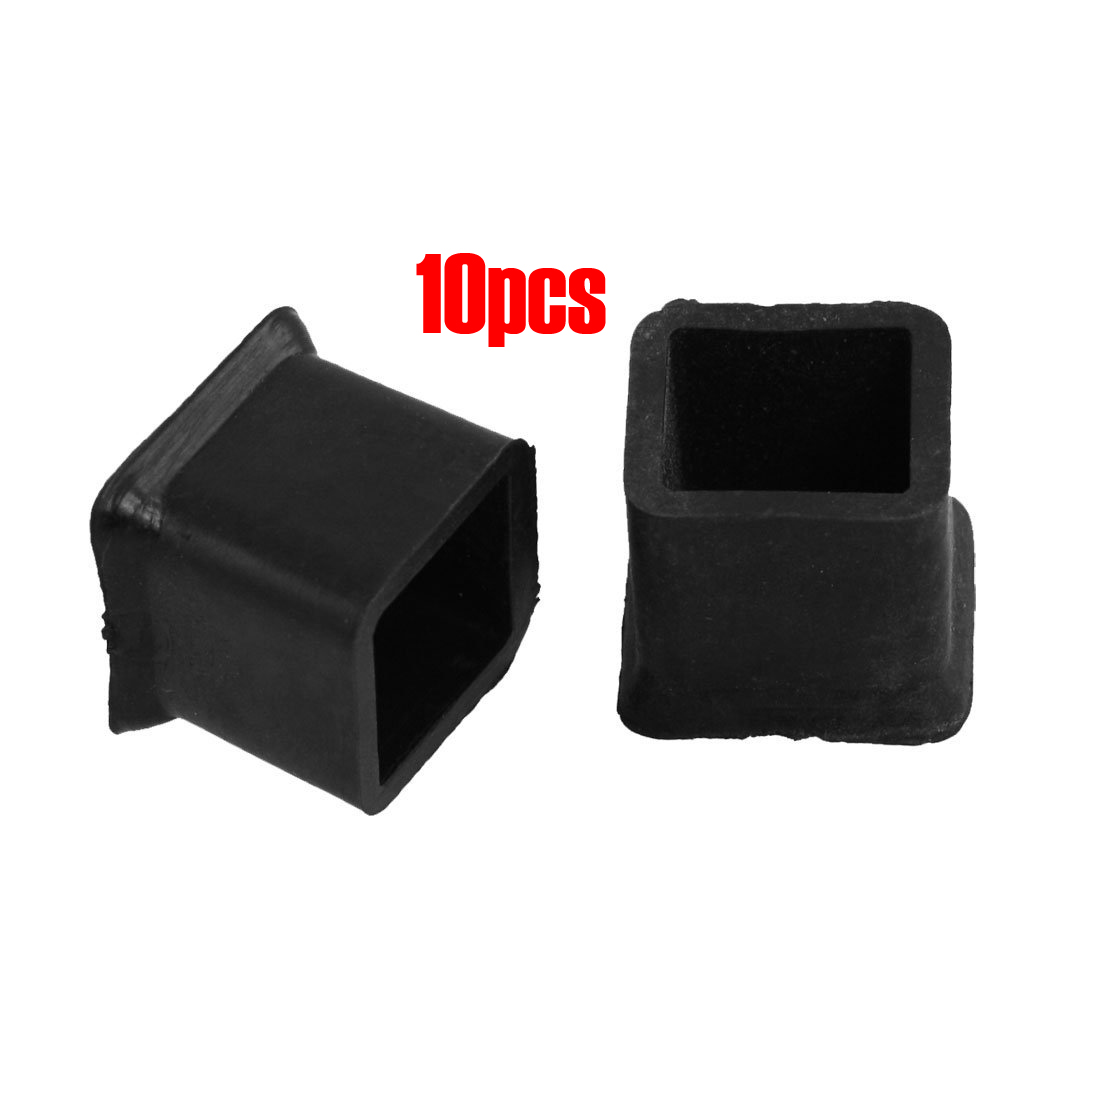 SZS Hot New 10Pcs Furniture Chair Table Leg Rubber Foot Covers Protectors 20mm X 20mm Free Shipping